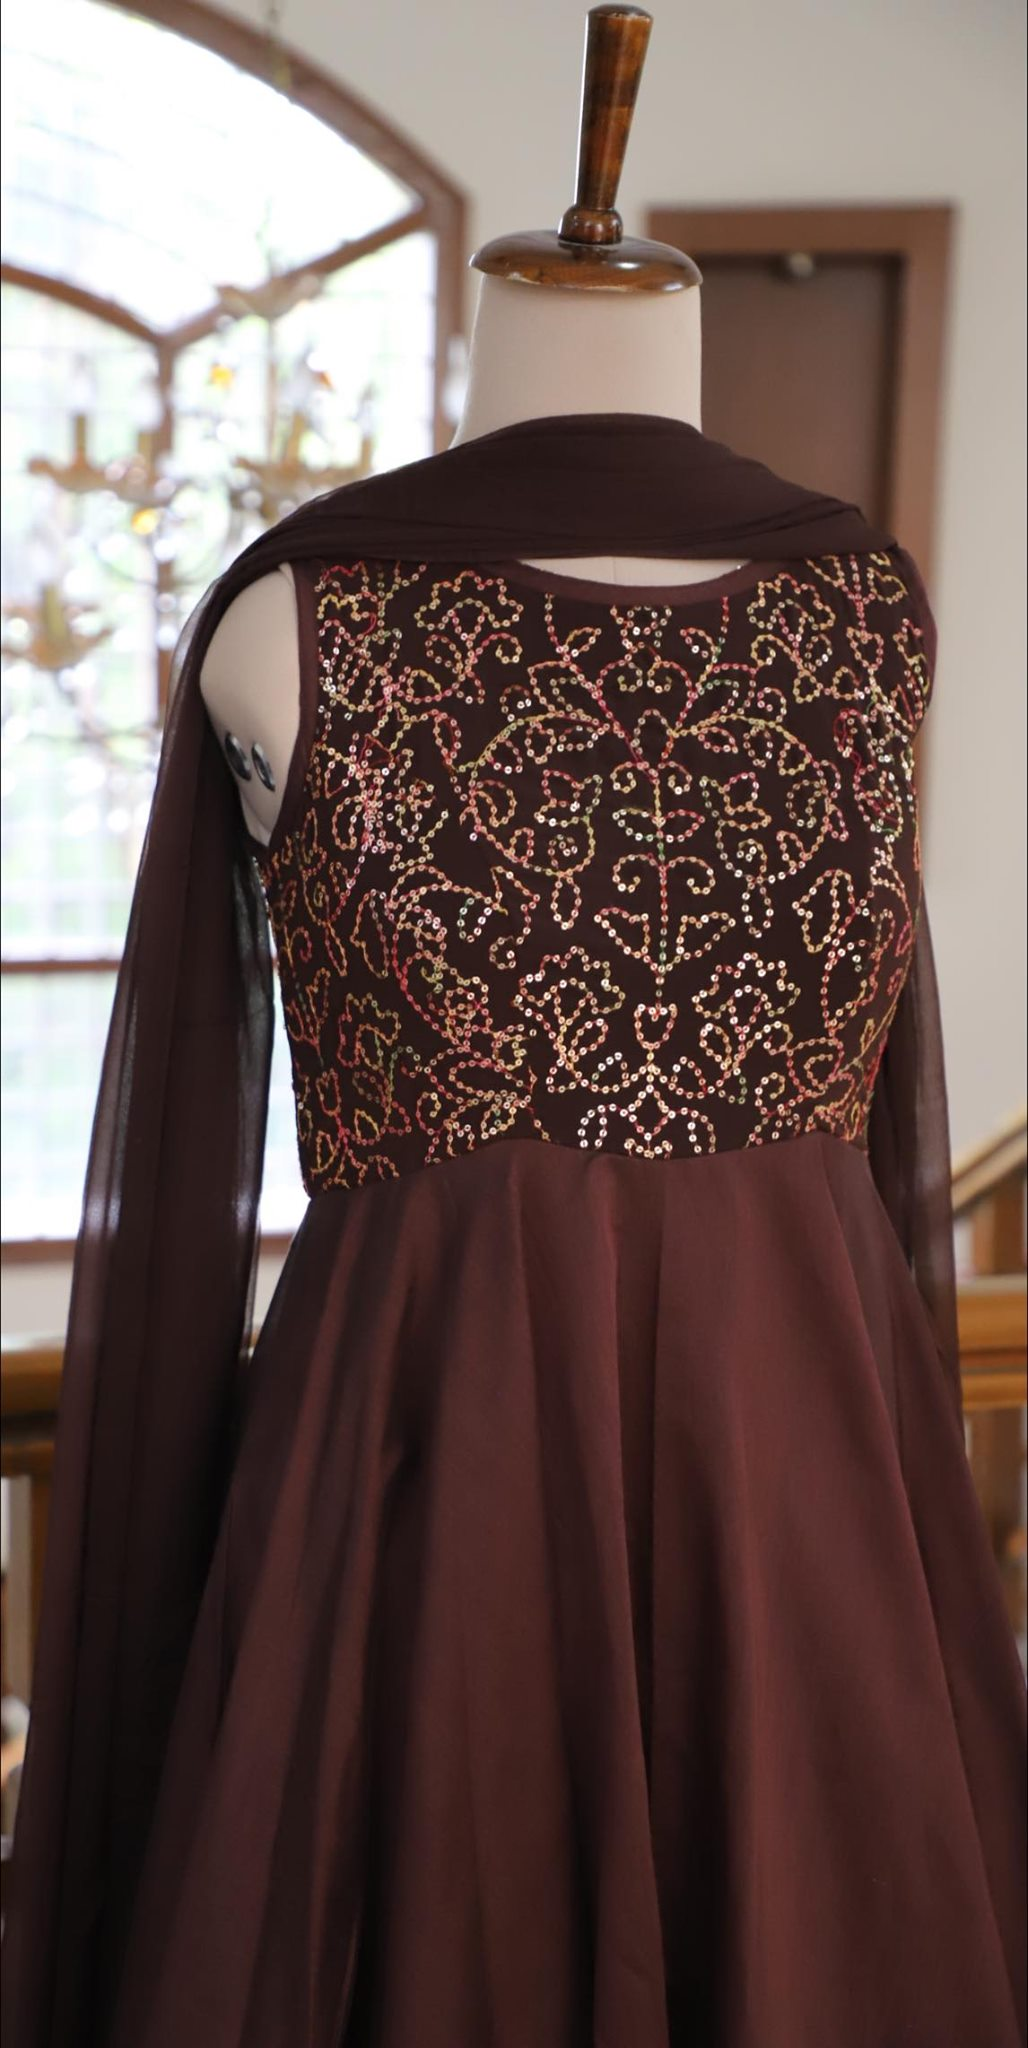 Stunning chocolate brown color long frock with hand embroidery yoke.   2021-10-13